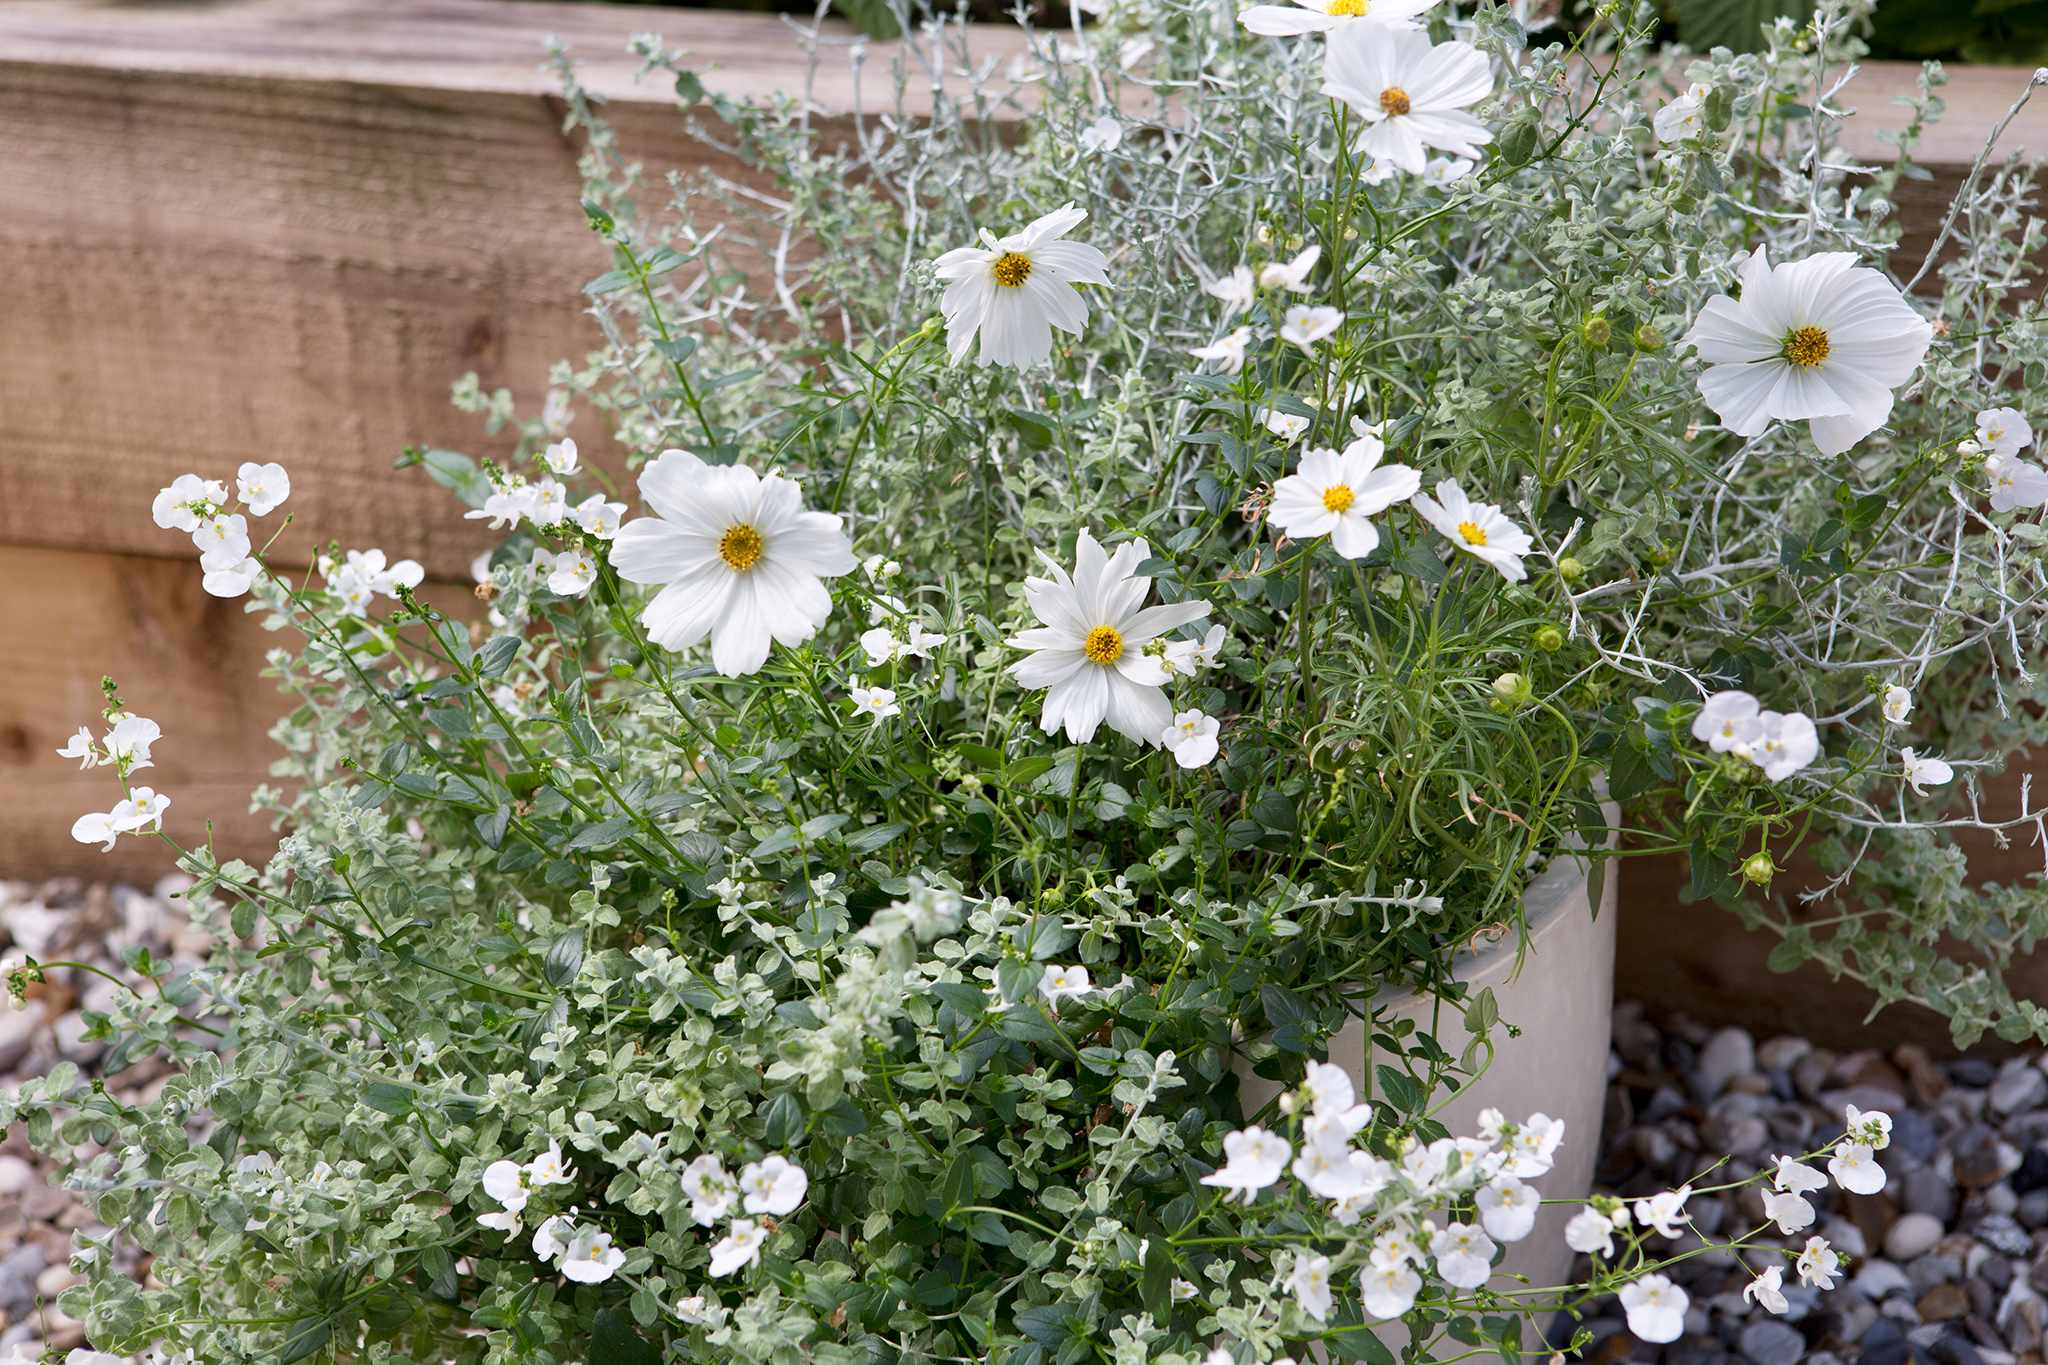 Cosmos growing in a container